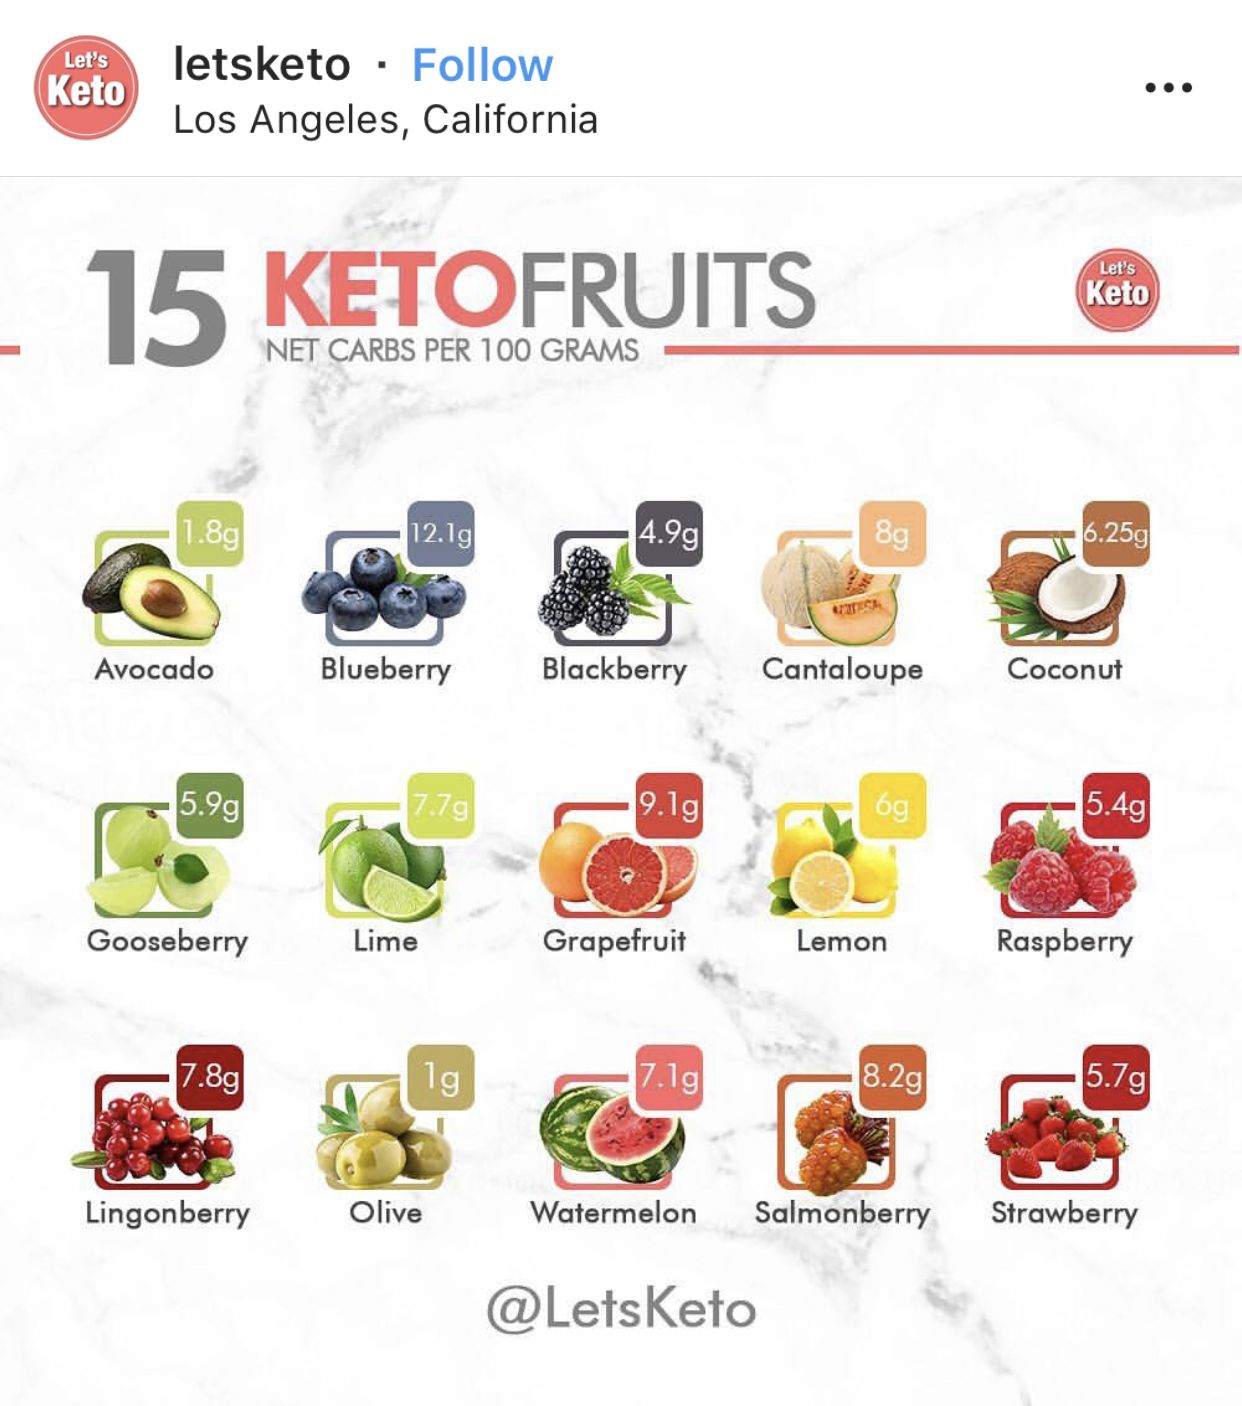 Pin by. on Keto (With images) Keto meal plan, Diet